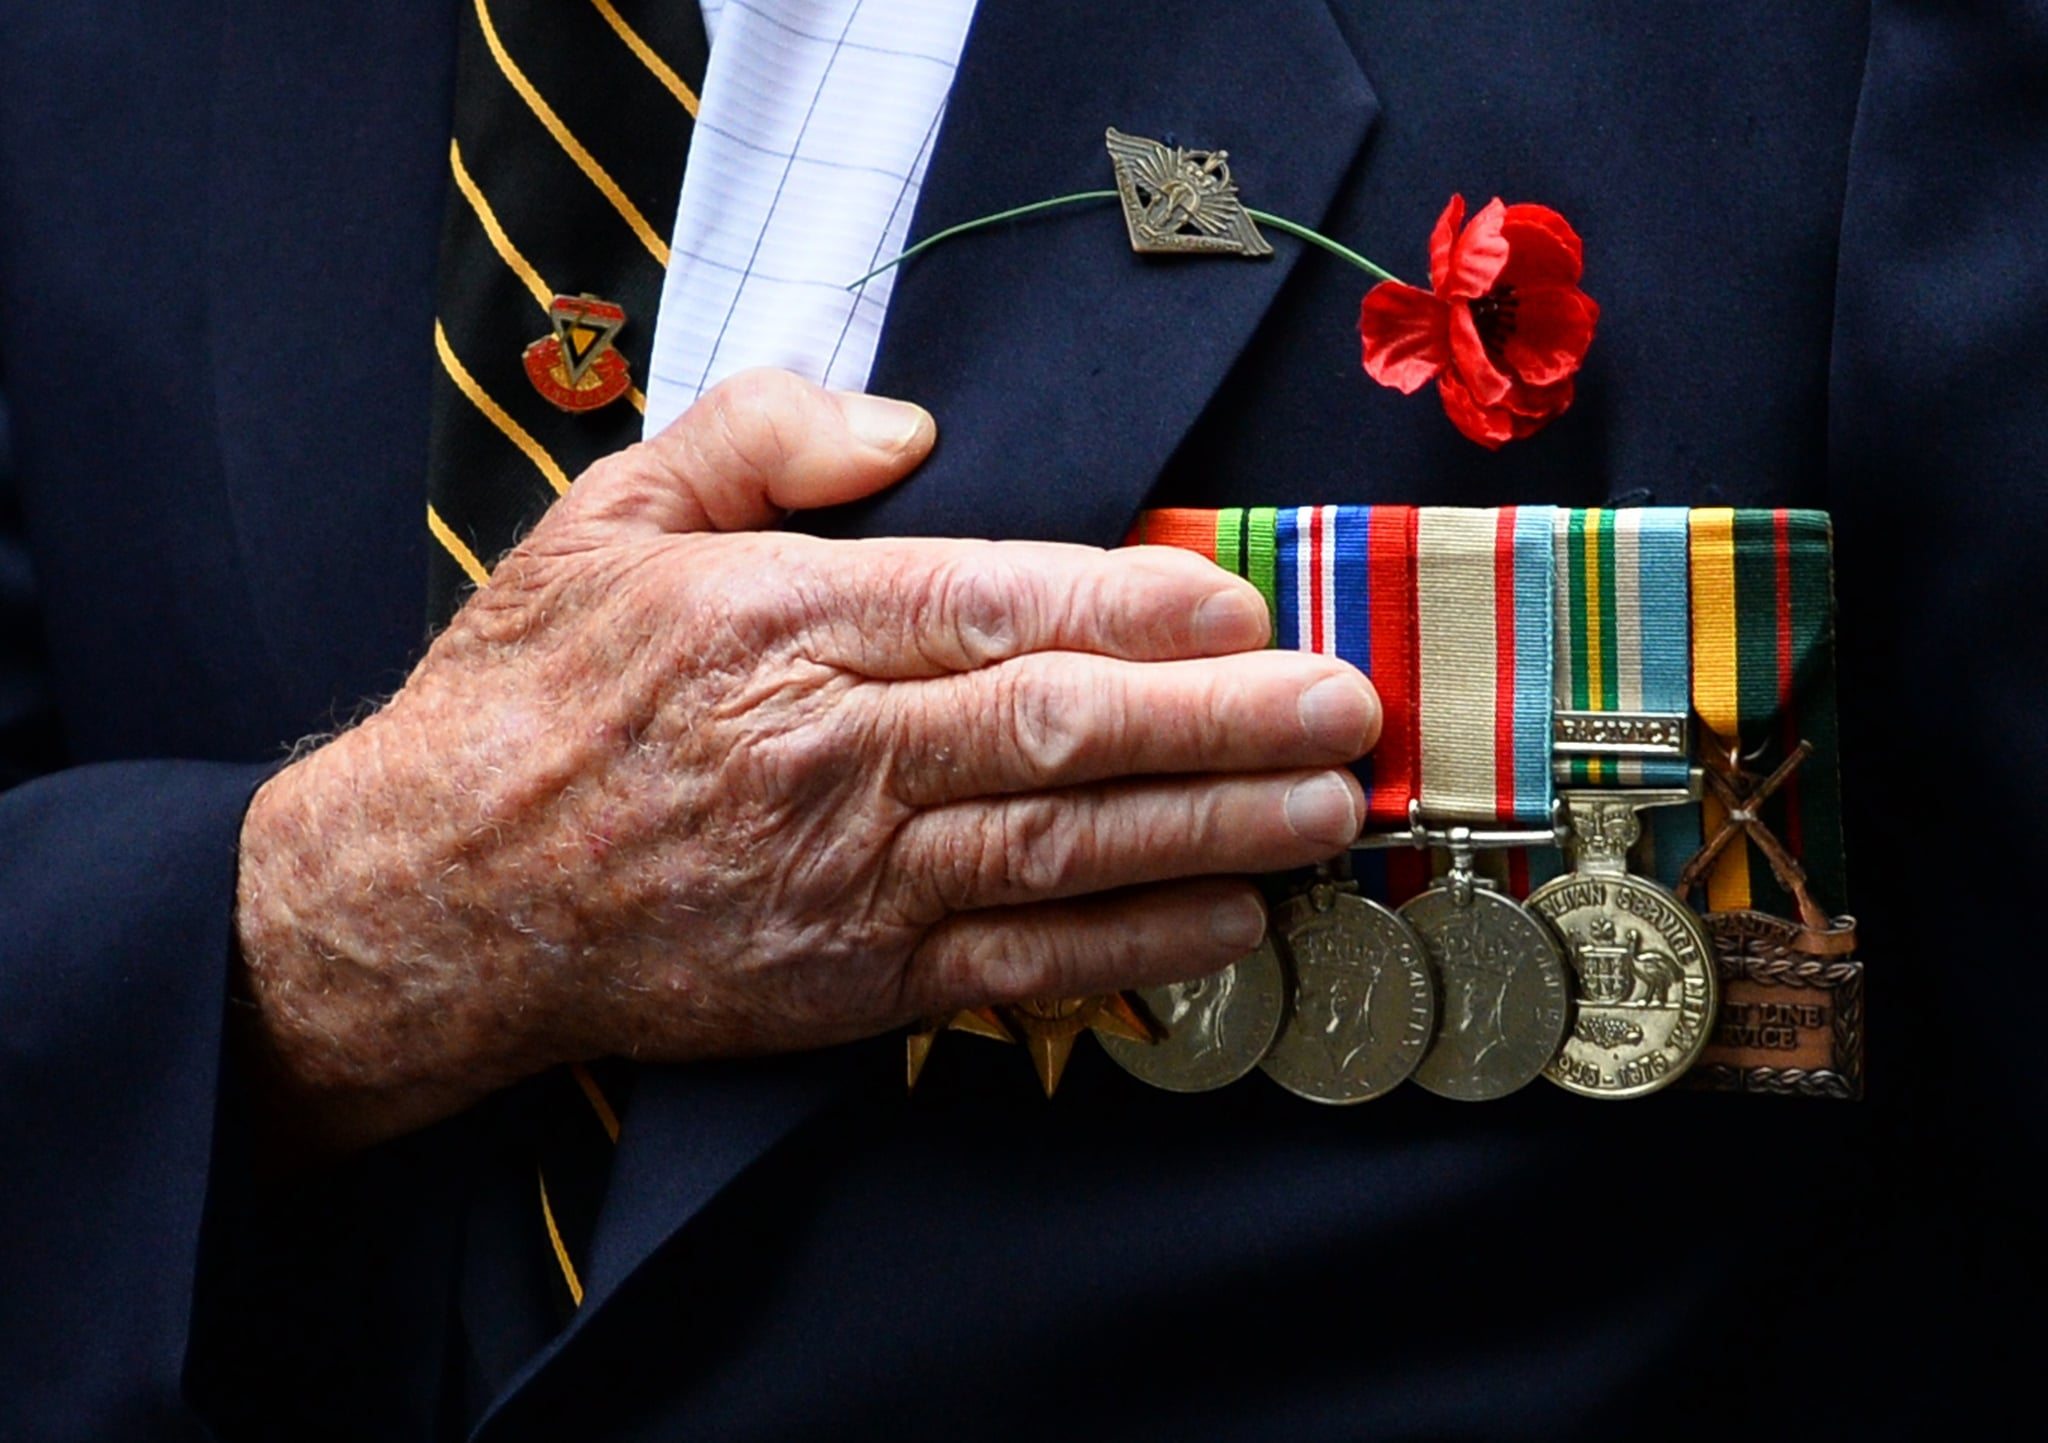 An Australian war veteran takes part in the annual ANZAC Day Parade in Sydney on April 25, 2014. Anzac Day commemorations are held on this day each year to mark the anniversary of the ill-fated landing of the Australian and New Zealand Army Corps (ANZAC) at Gallipoli in World War I. AFP PHOTO/Peter PARKS        (Photo credit should read PETER PARKS/AFP/Getty Images)